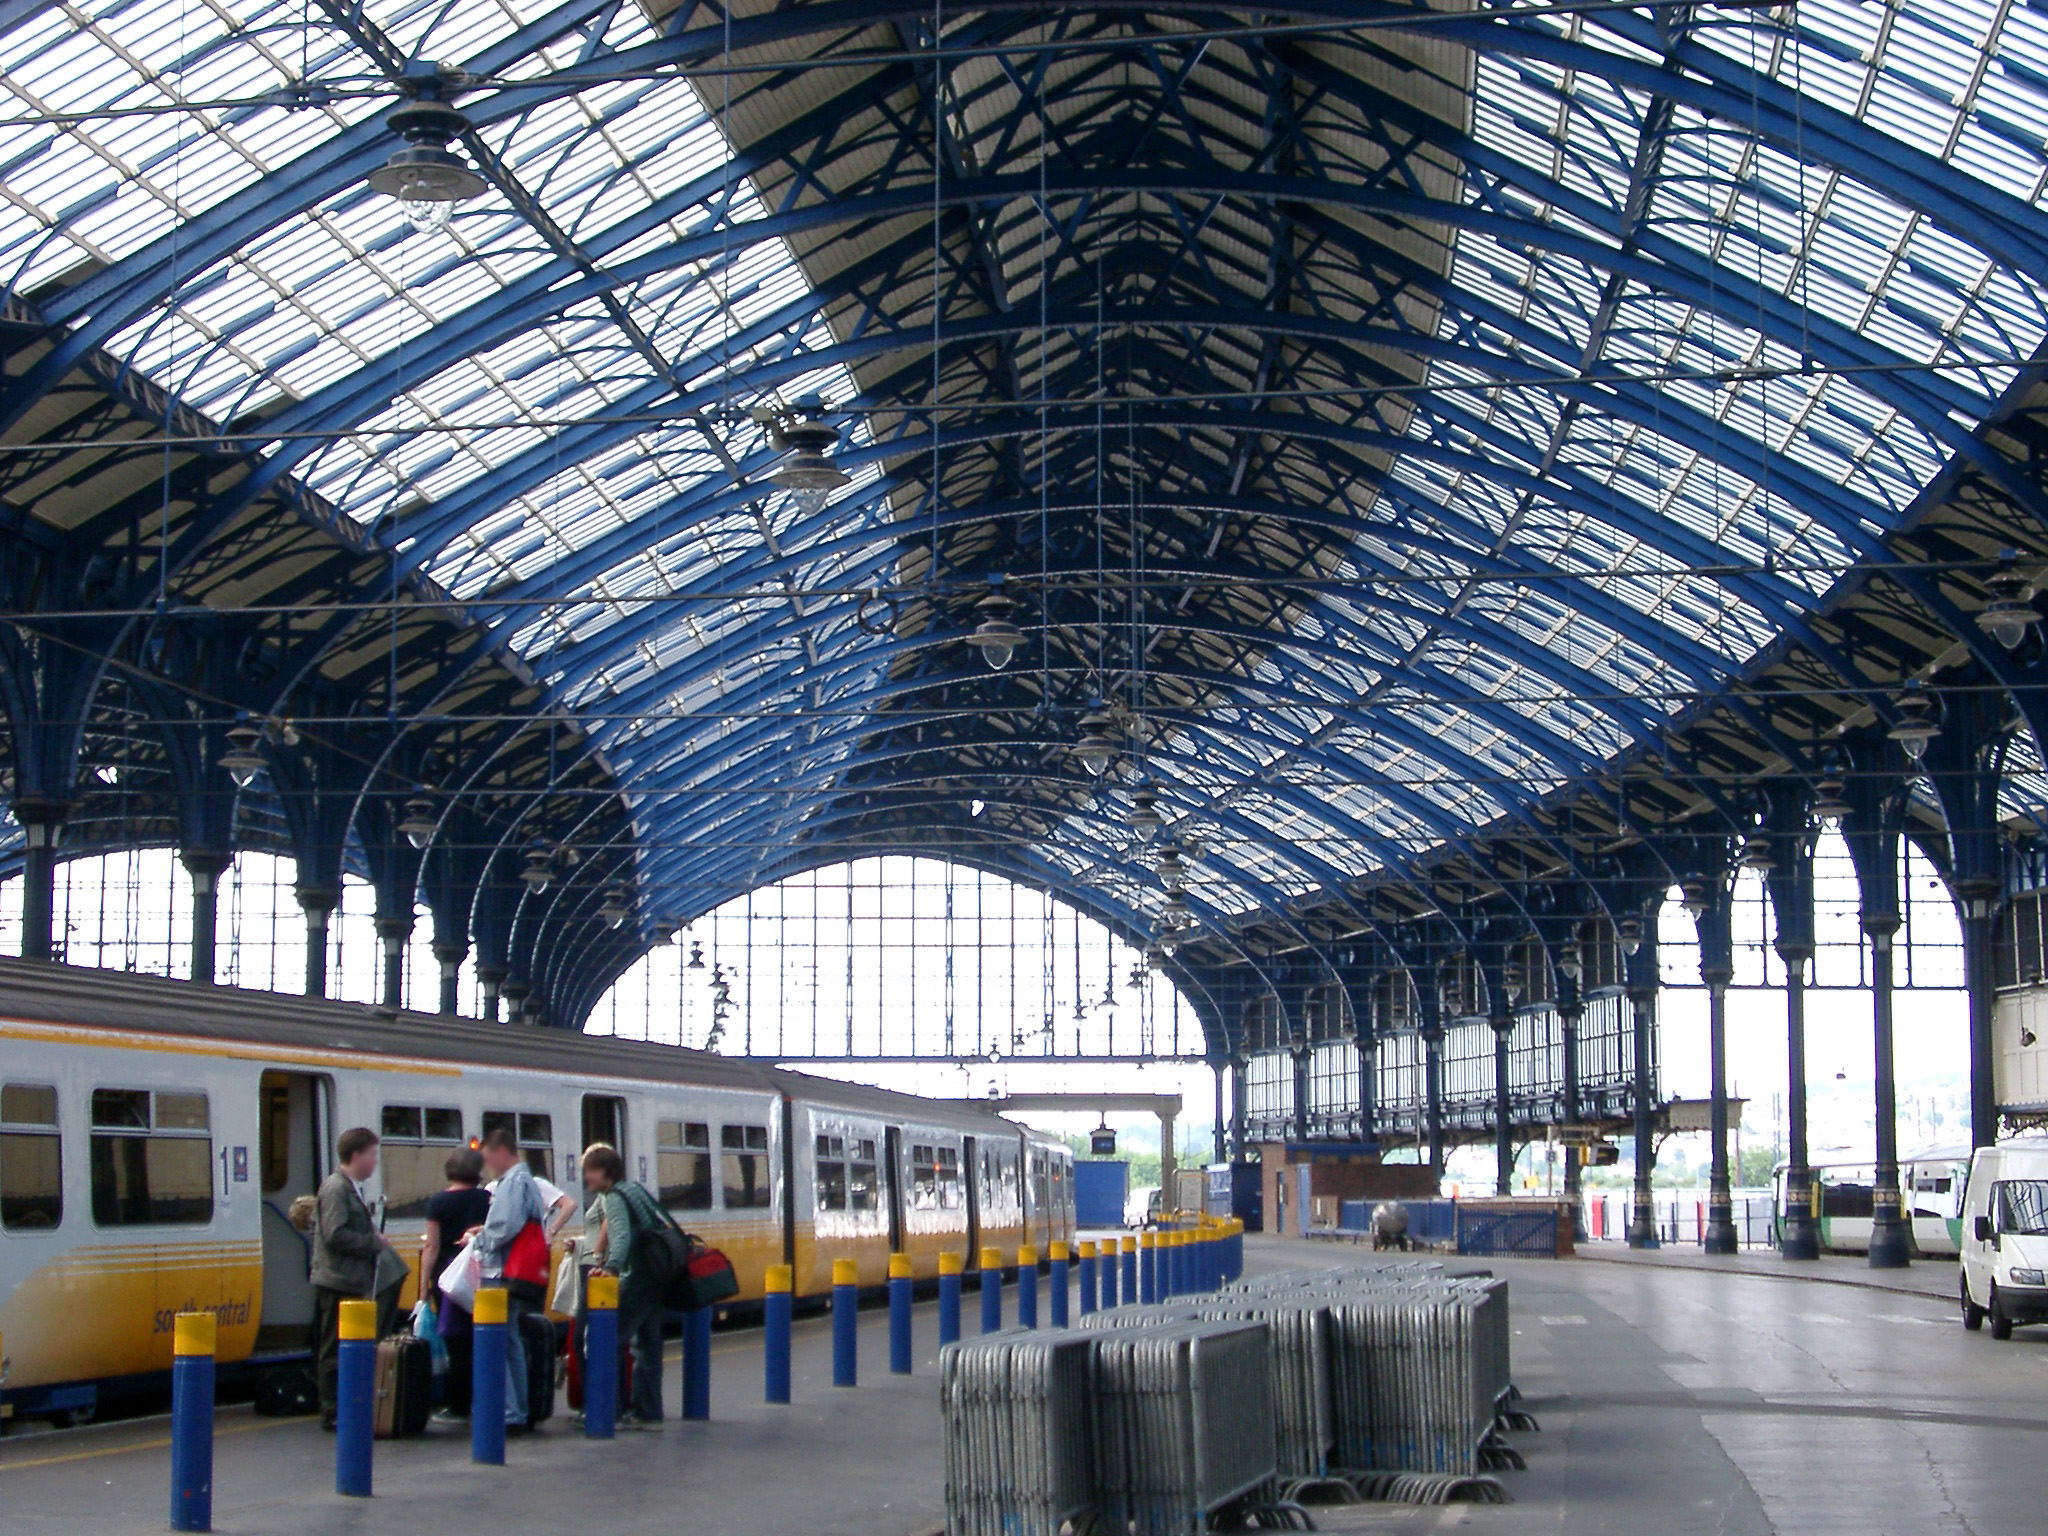 Interior of Brighton Station with its curved glassed roof and a train standing at the platform with visitors boarding